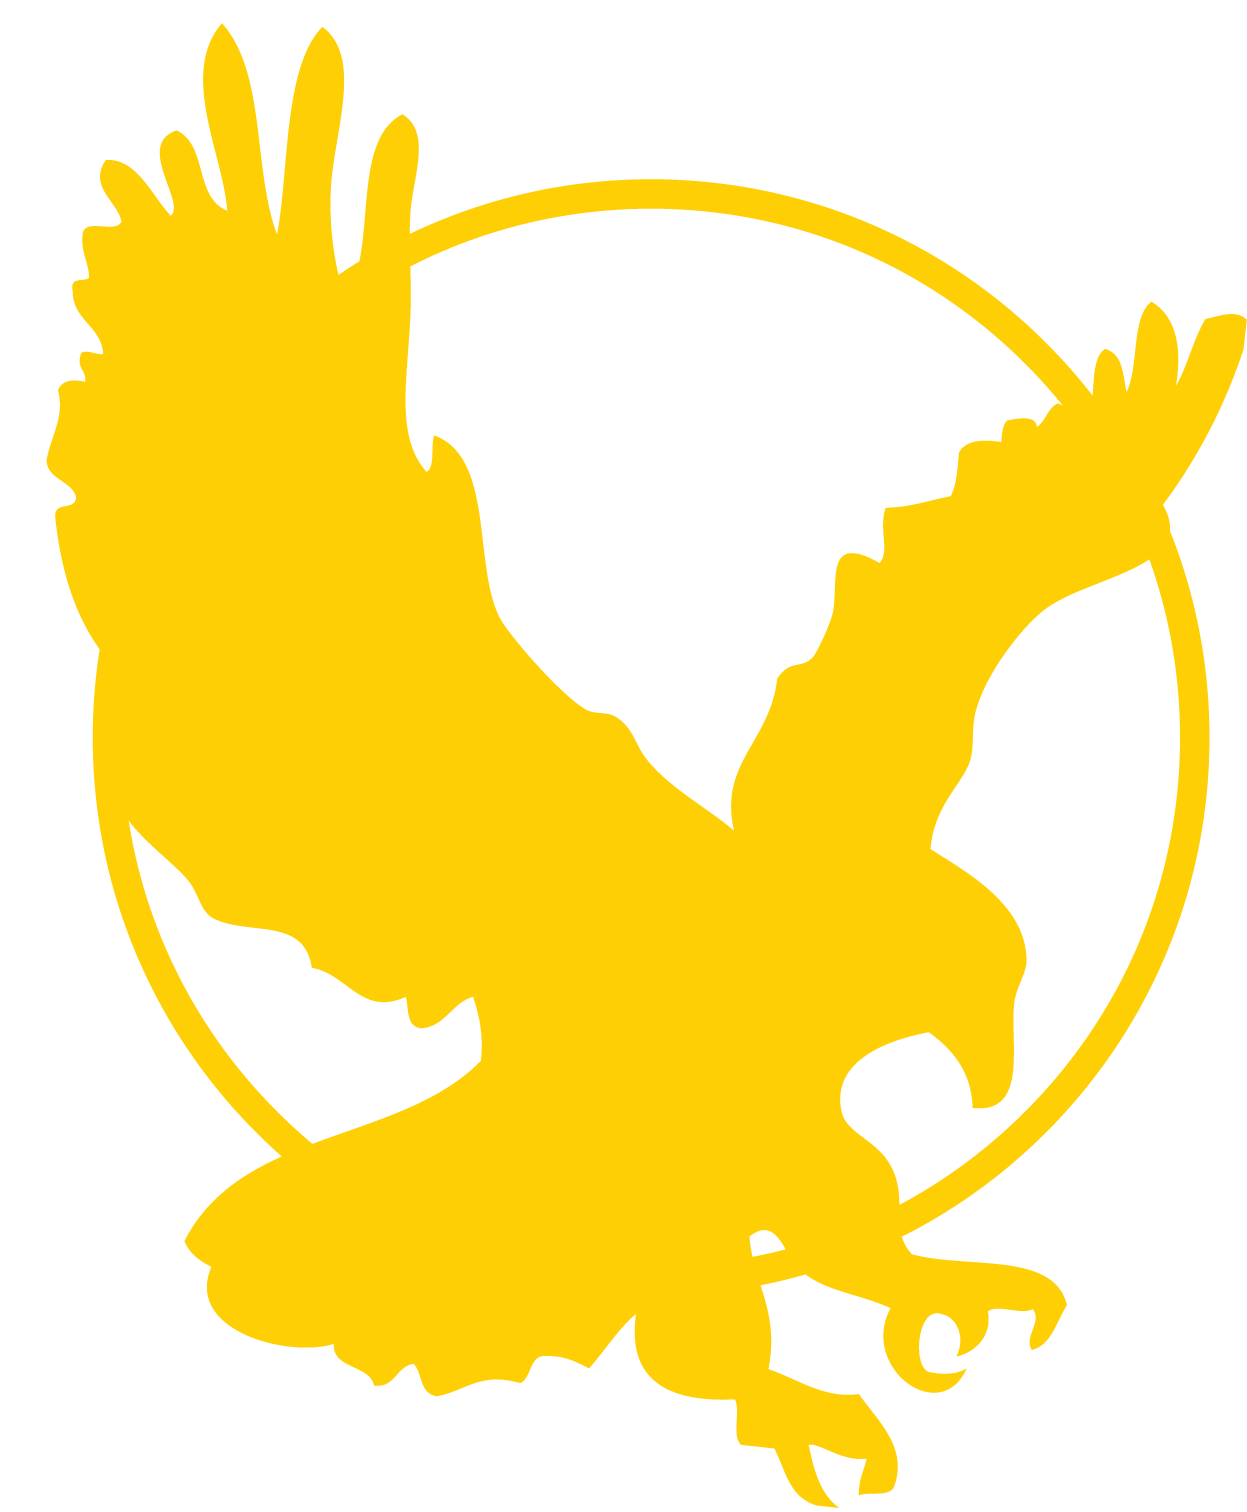 eagle symbol logo - photo #20